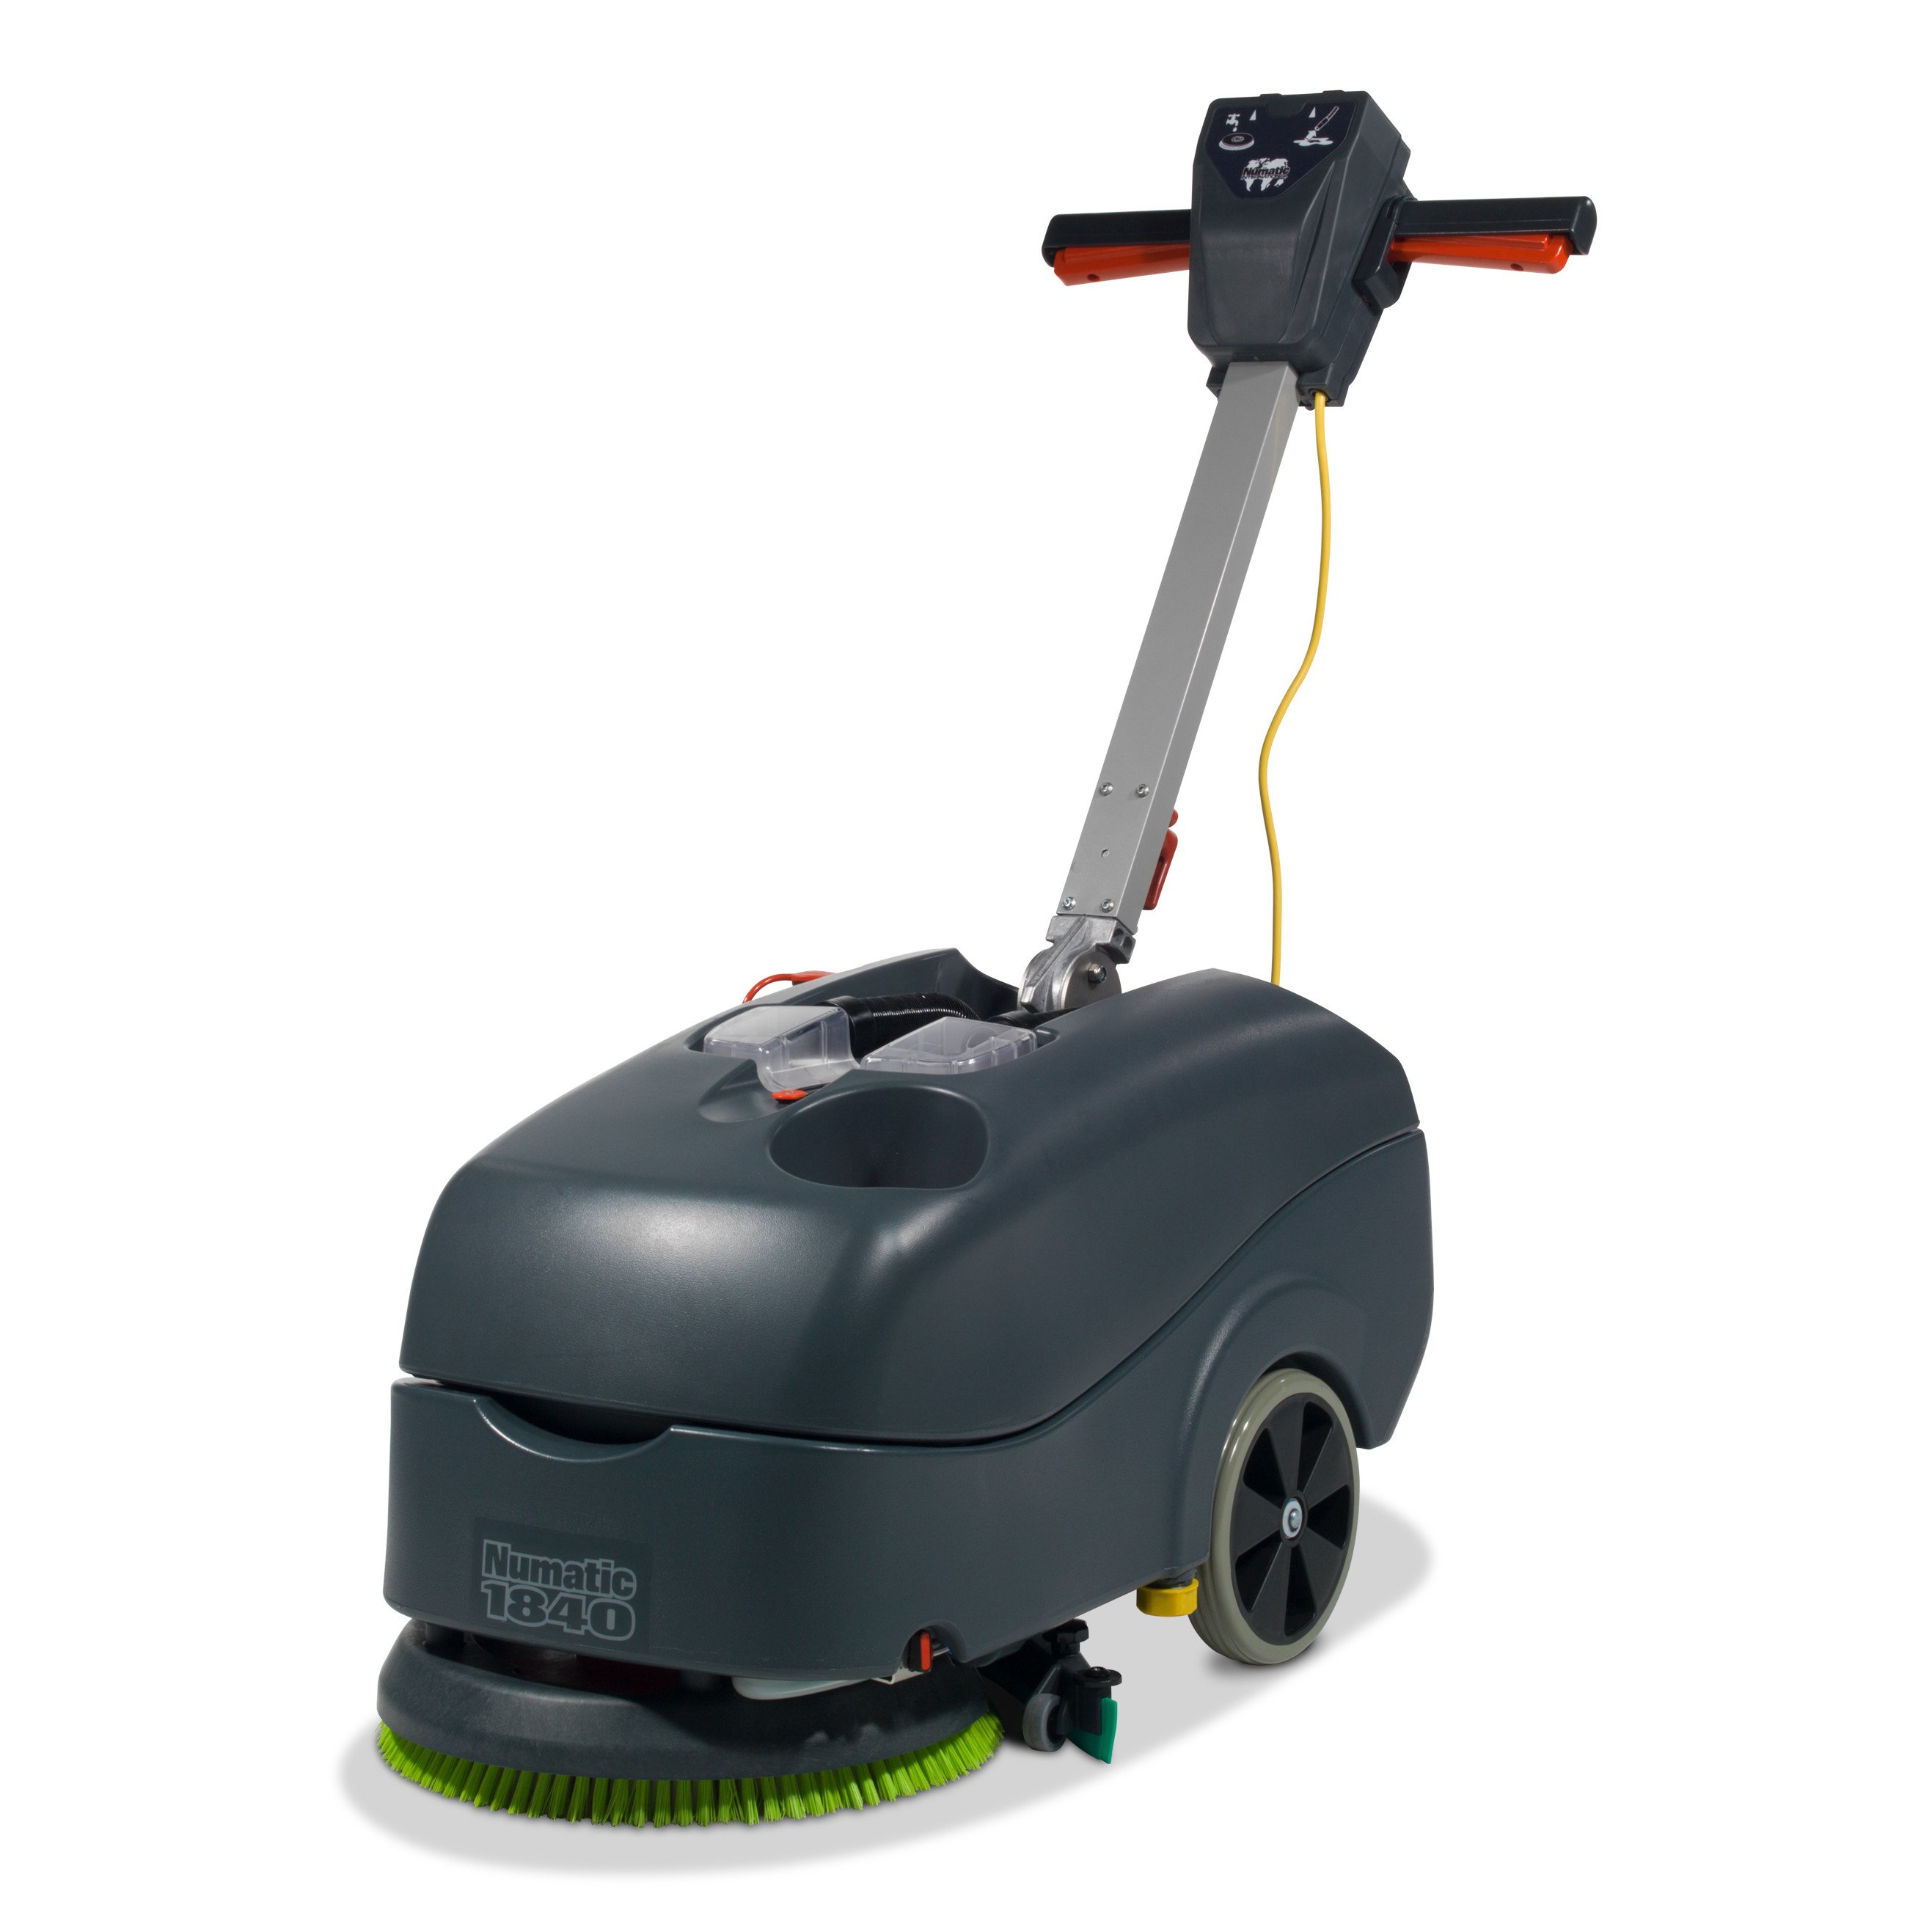 Numatic Twintec Cable Scrubber Dryer Tt1840g Janitorial